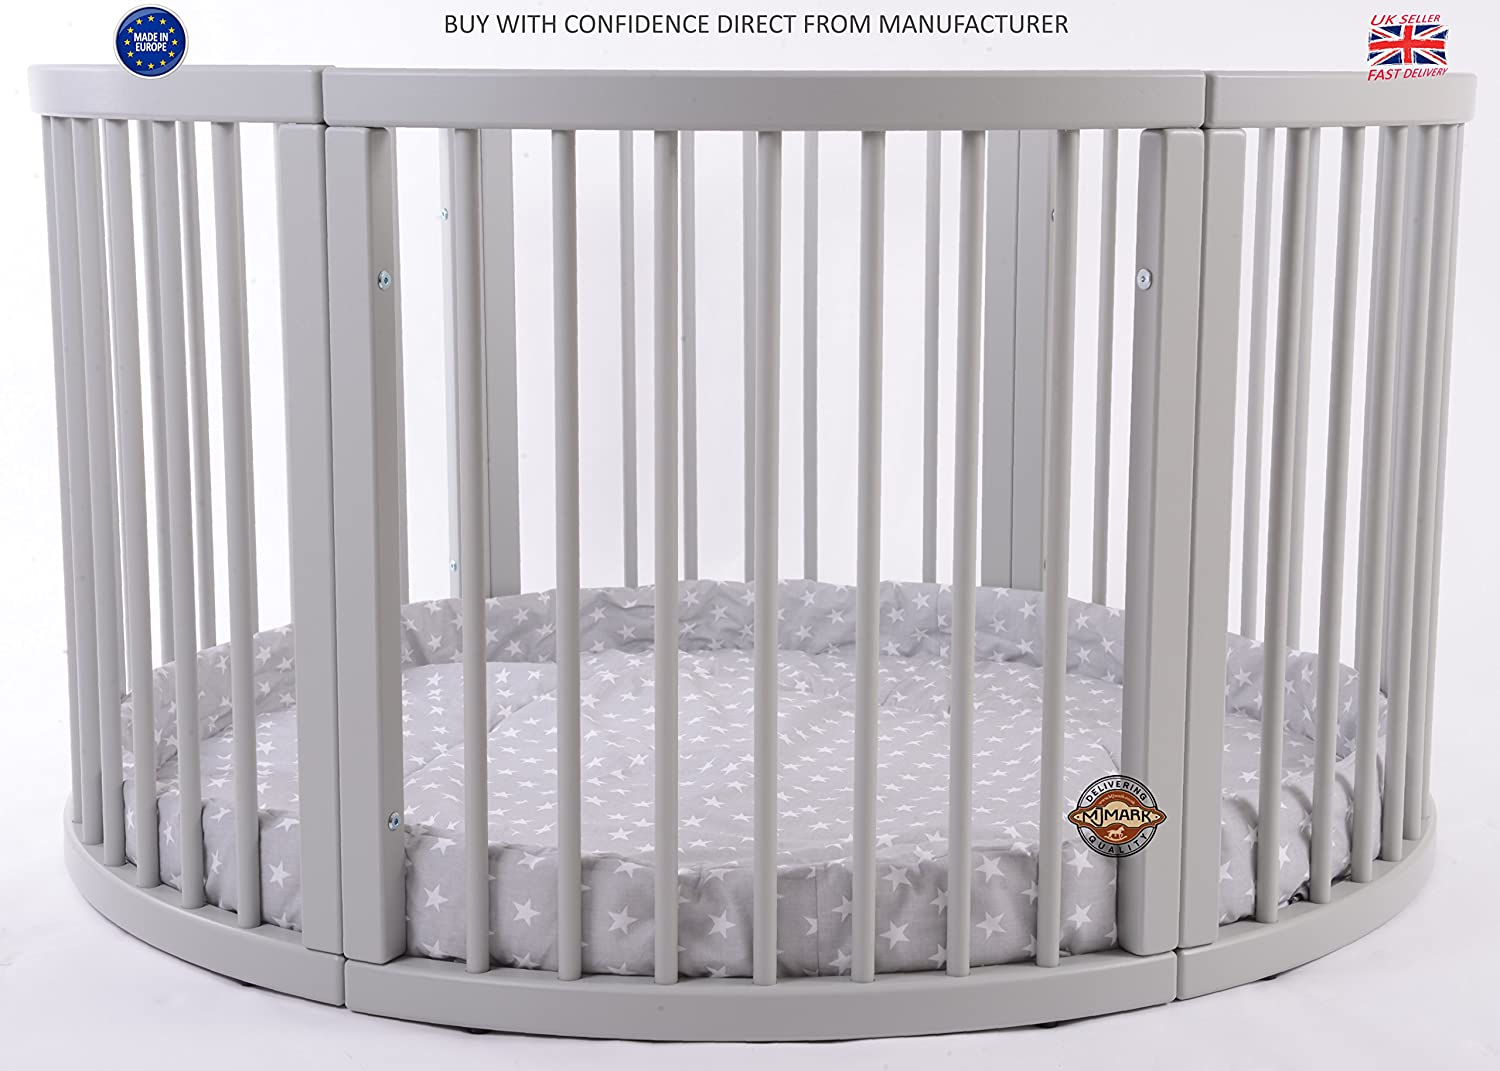 Brand NEW VERY LARGE Wooden Round PLAYPEN ATLAS QUATTRO with play-mat in Grey with white Stars by MJmark SALE SALE